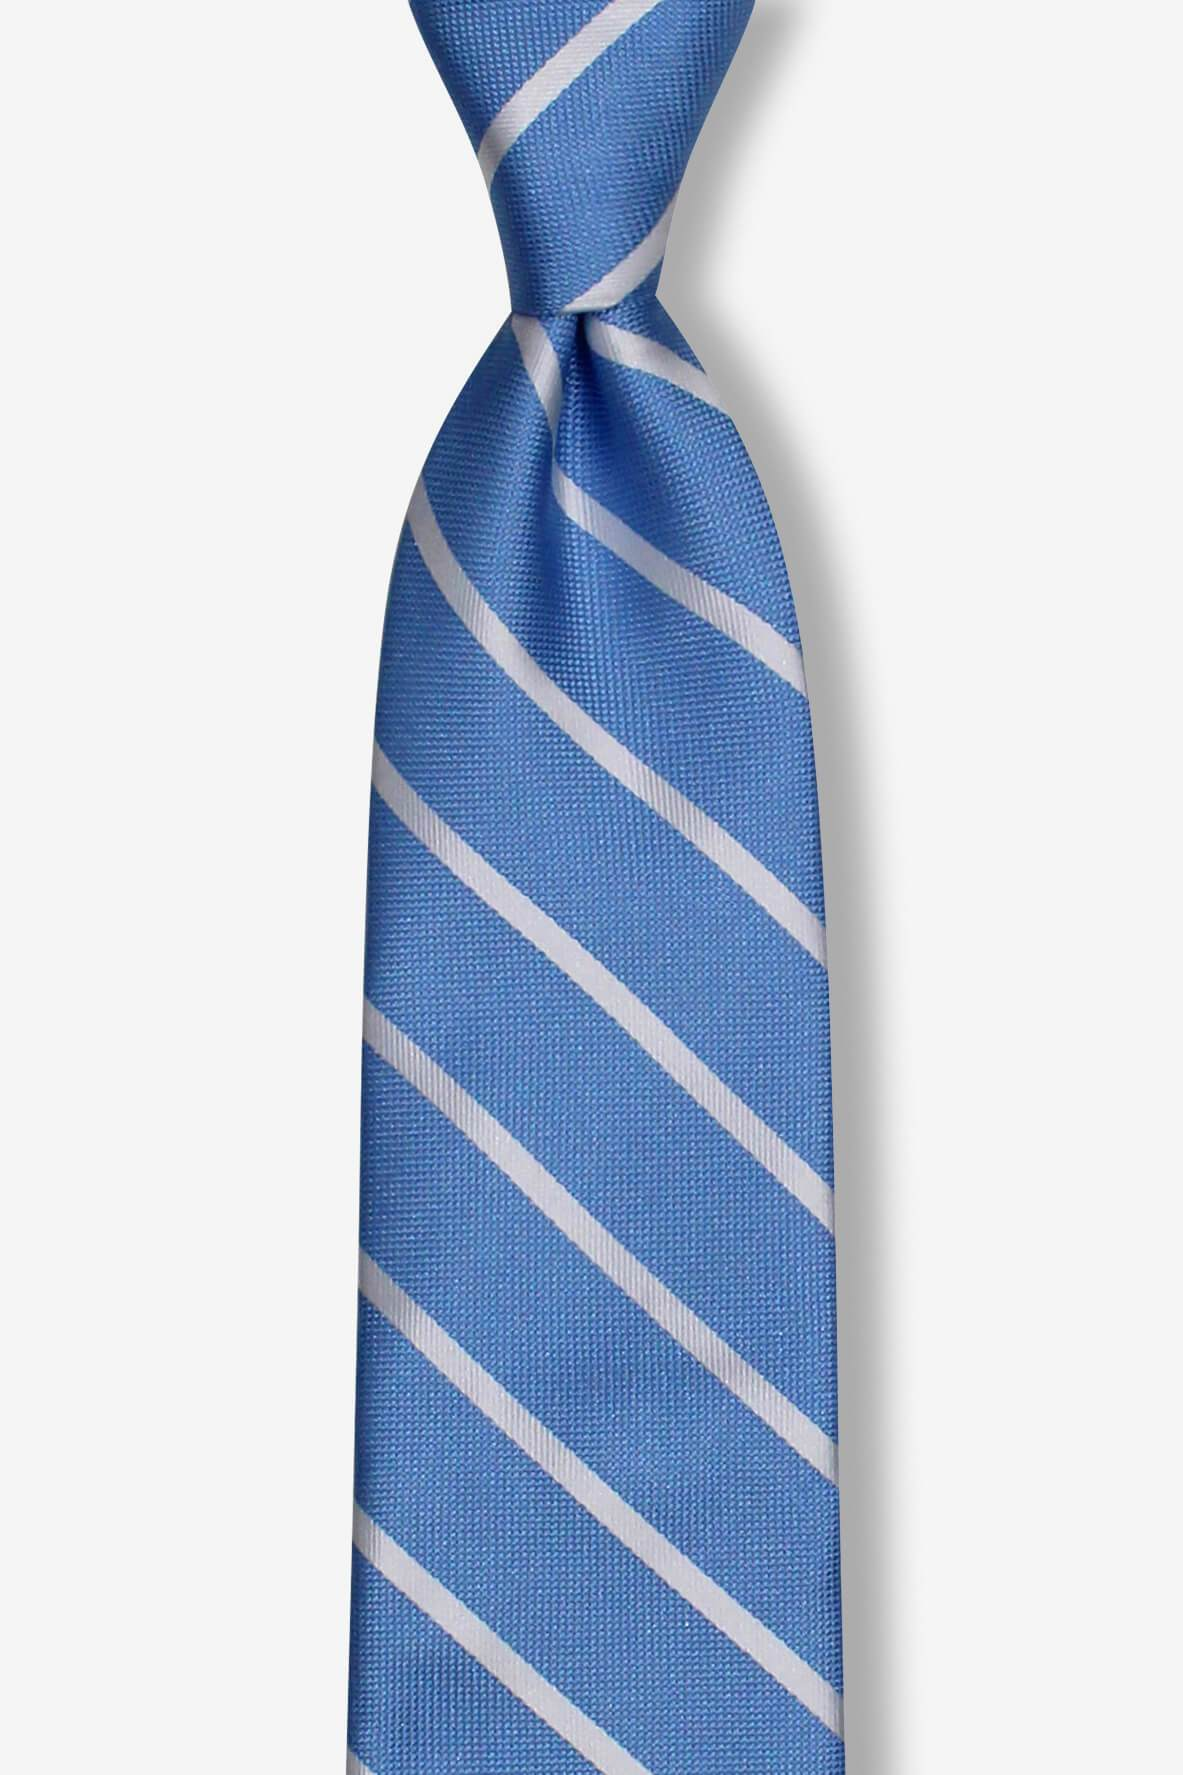 Light Blue with Silver Stripes Skinny Pre-tied Tie, Tie, GoTie